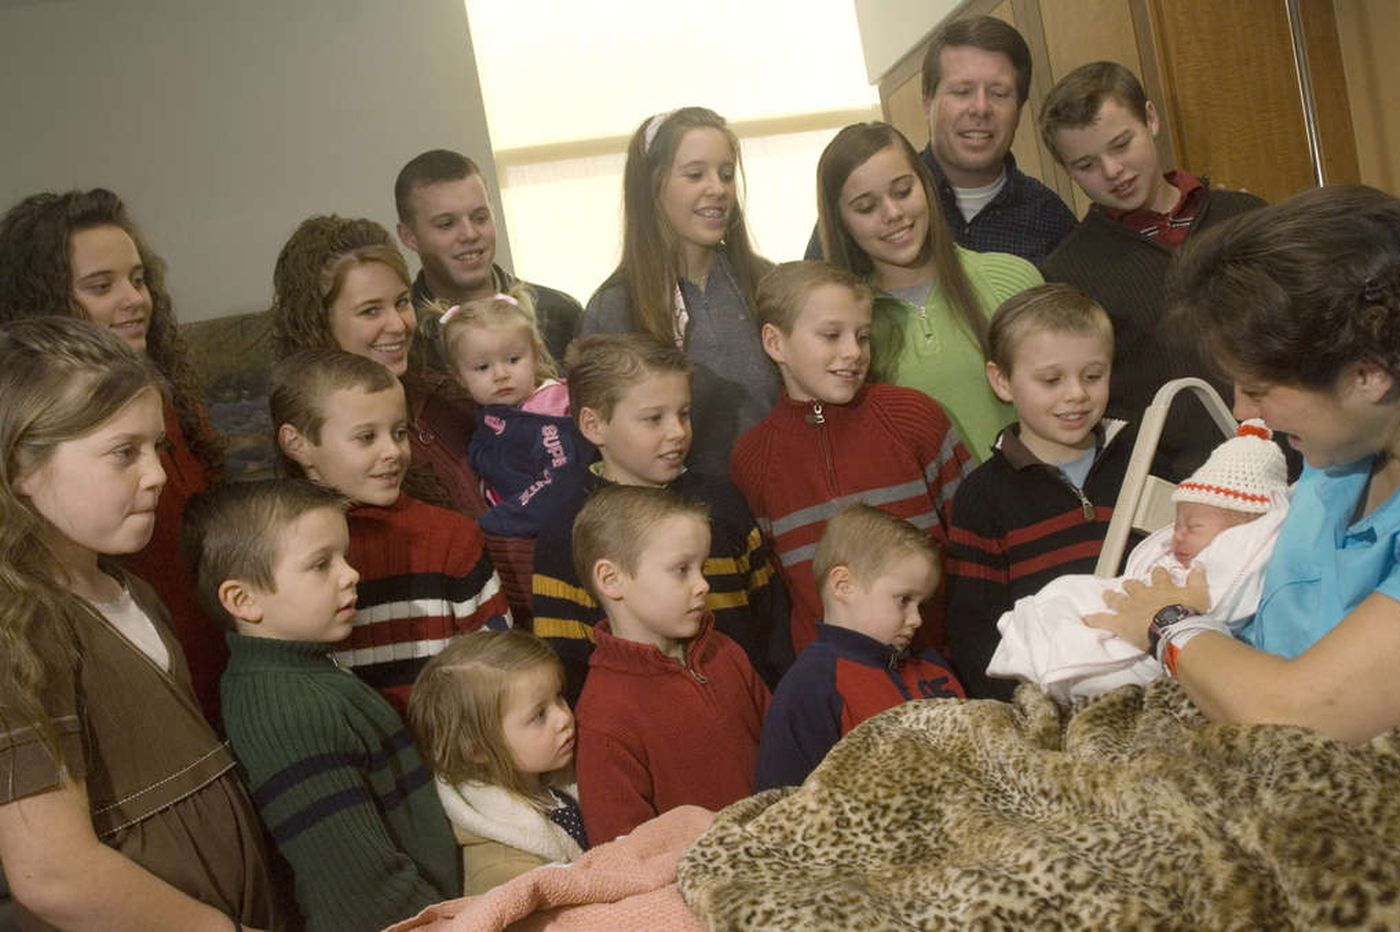 19 thoughts about Josh Duggar